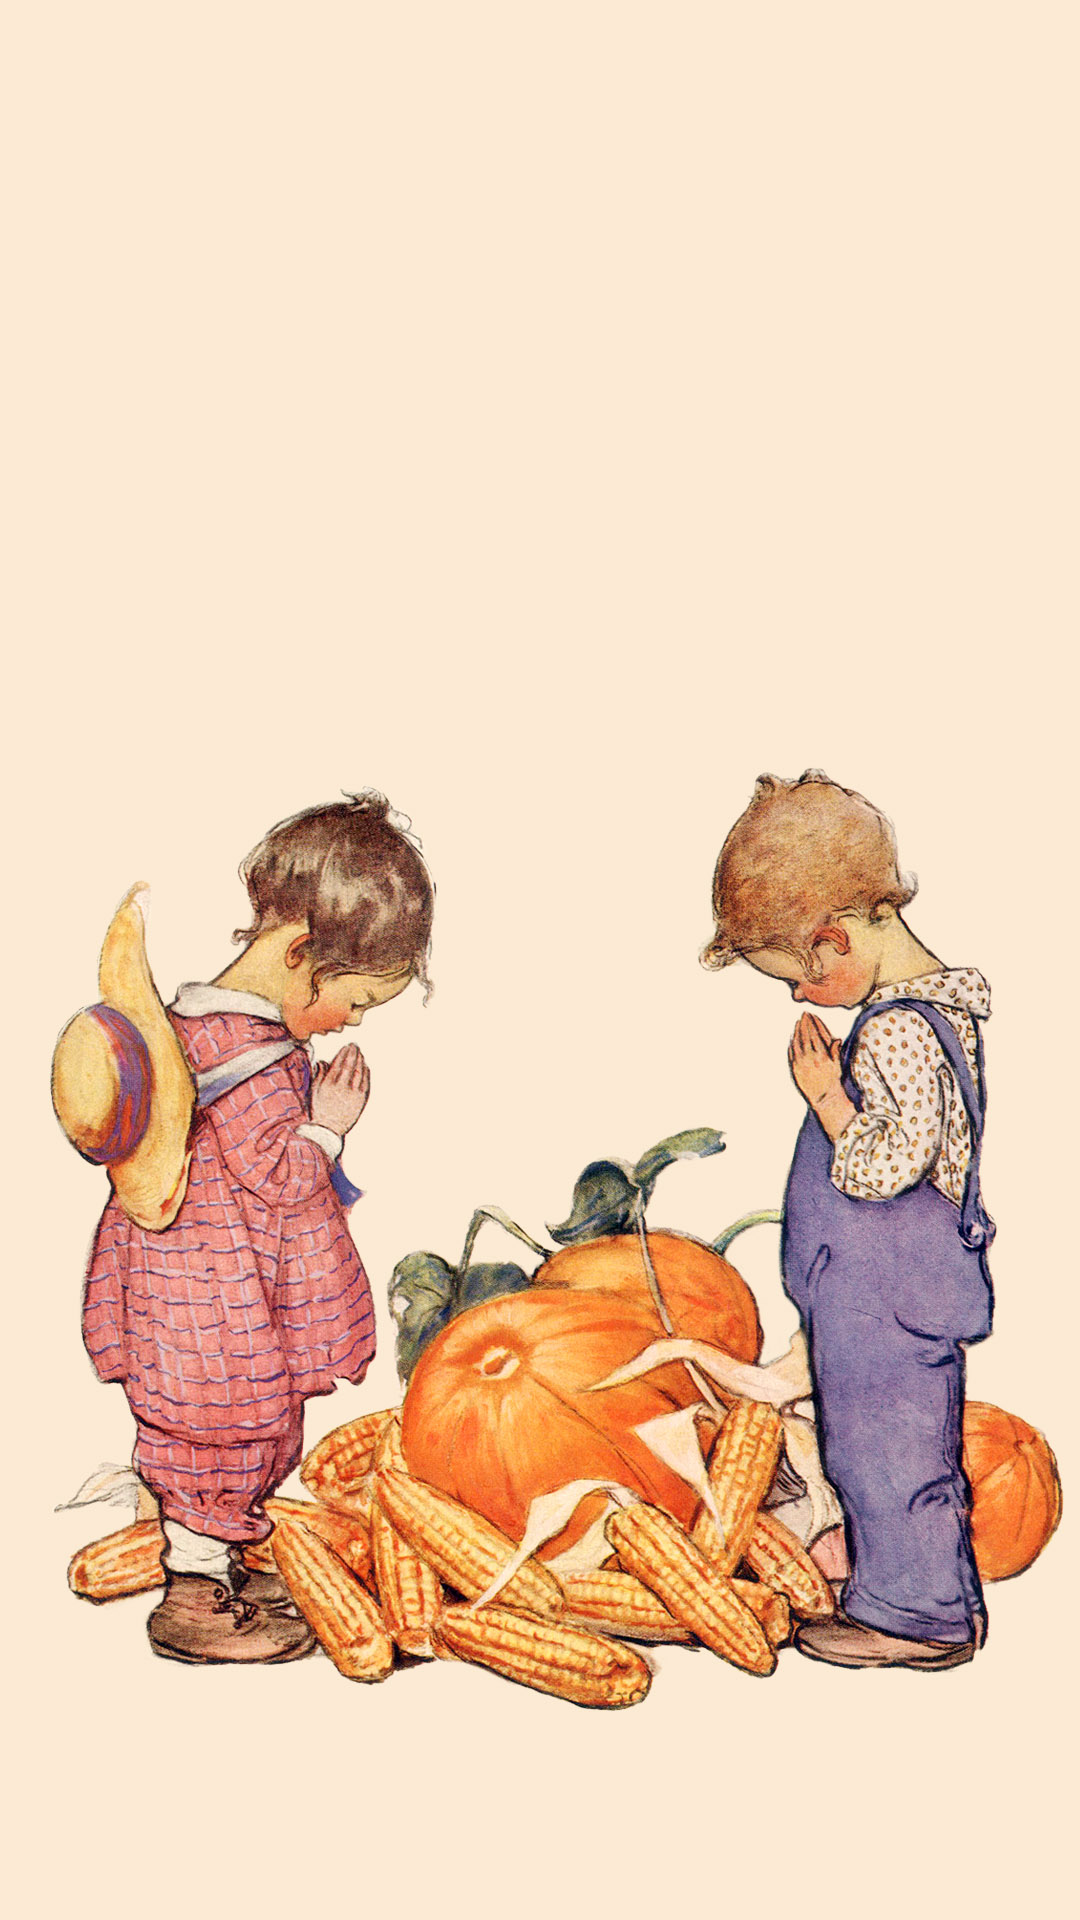 ジェシー・ウィルコックス・スミス Jessie Willcox Smith - Good Housekeeping November 1930 1080x1920